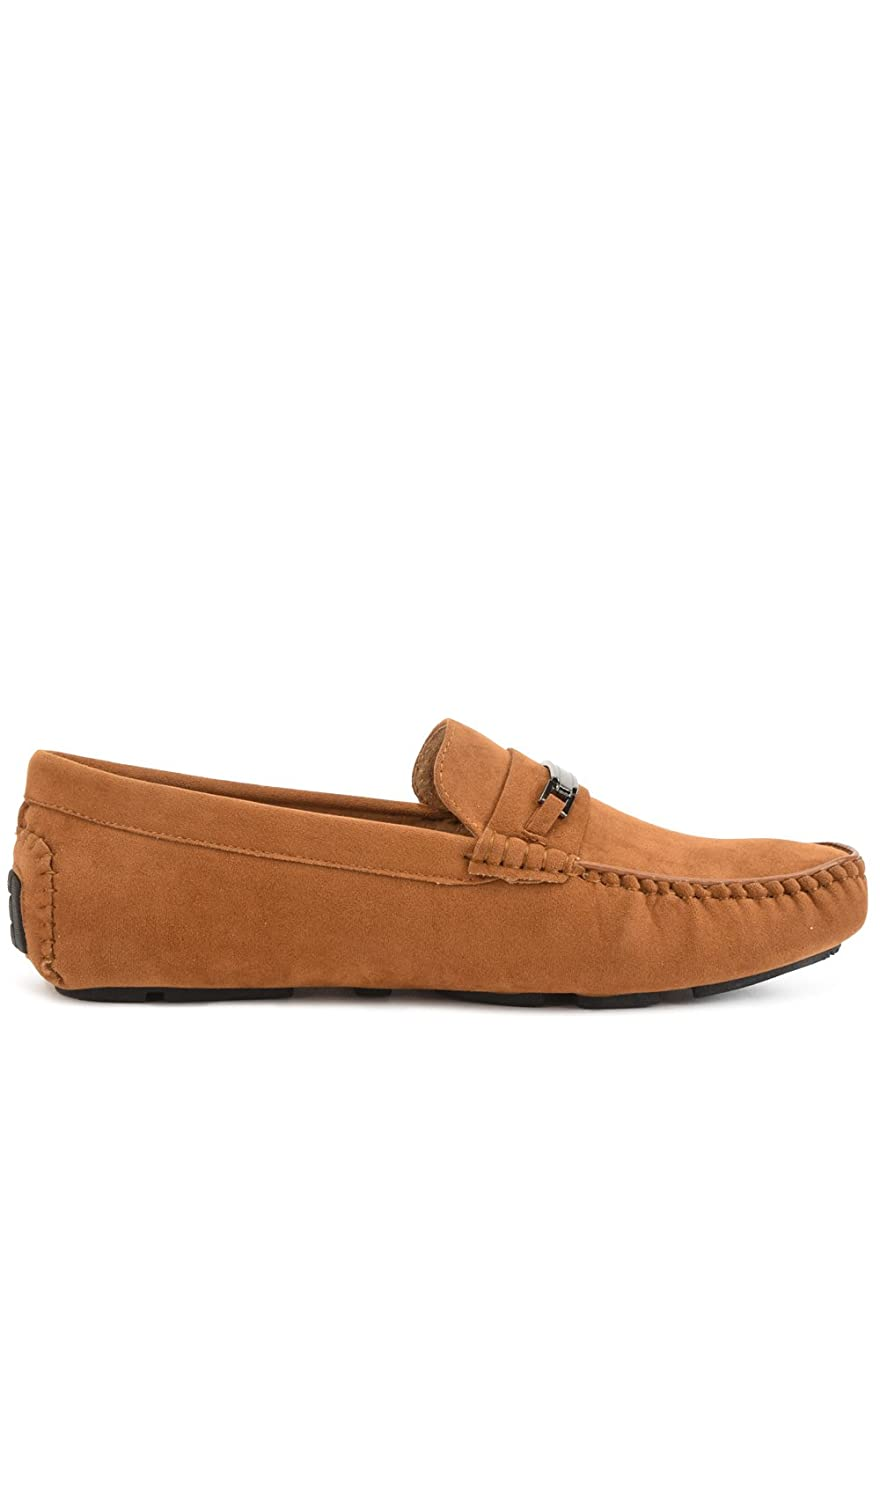 Amazon.com | Reservoir Shoes Moccasin with Square Toe Perm Men Camel | Shoes